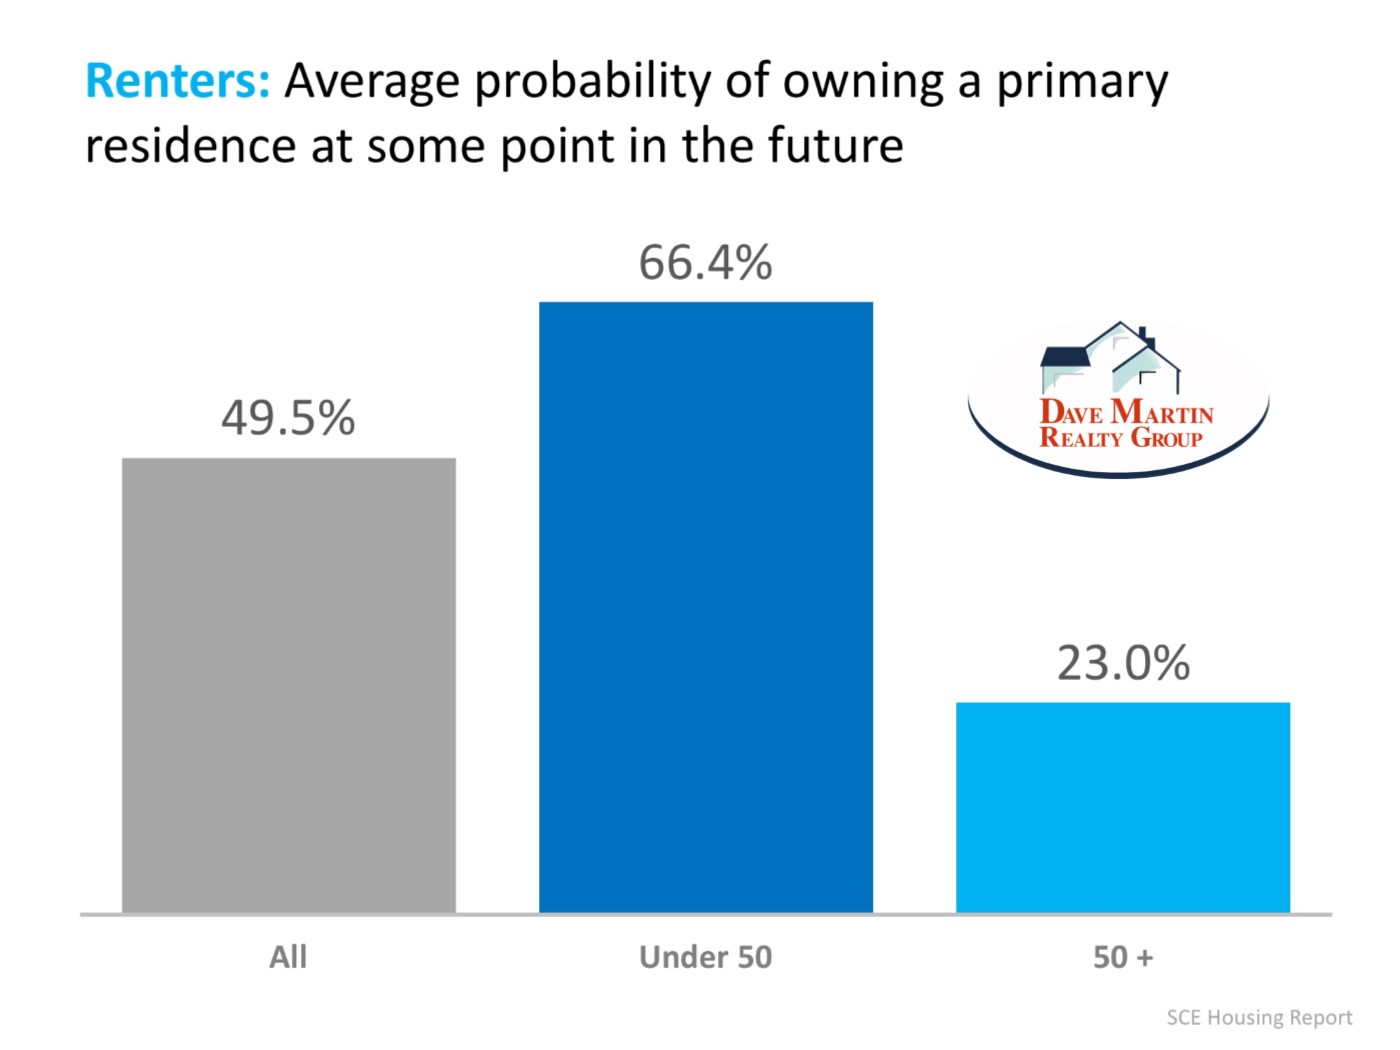 Most renter would prefer to own their home rather than rent including Millennials